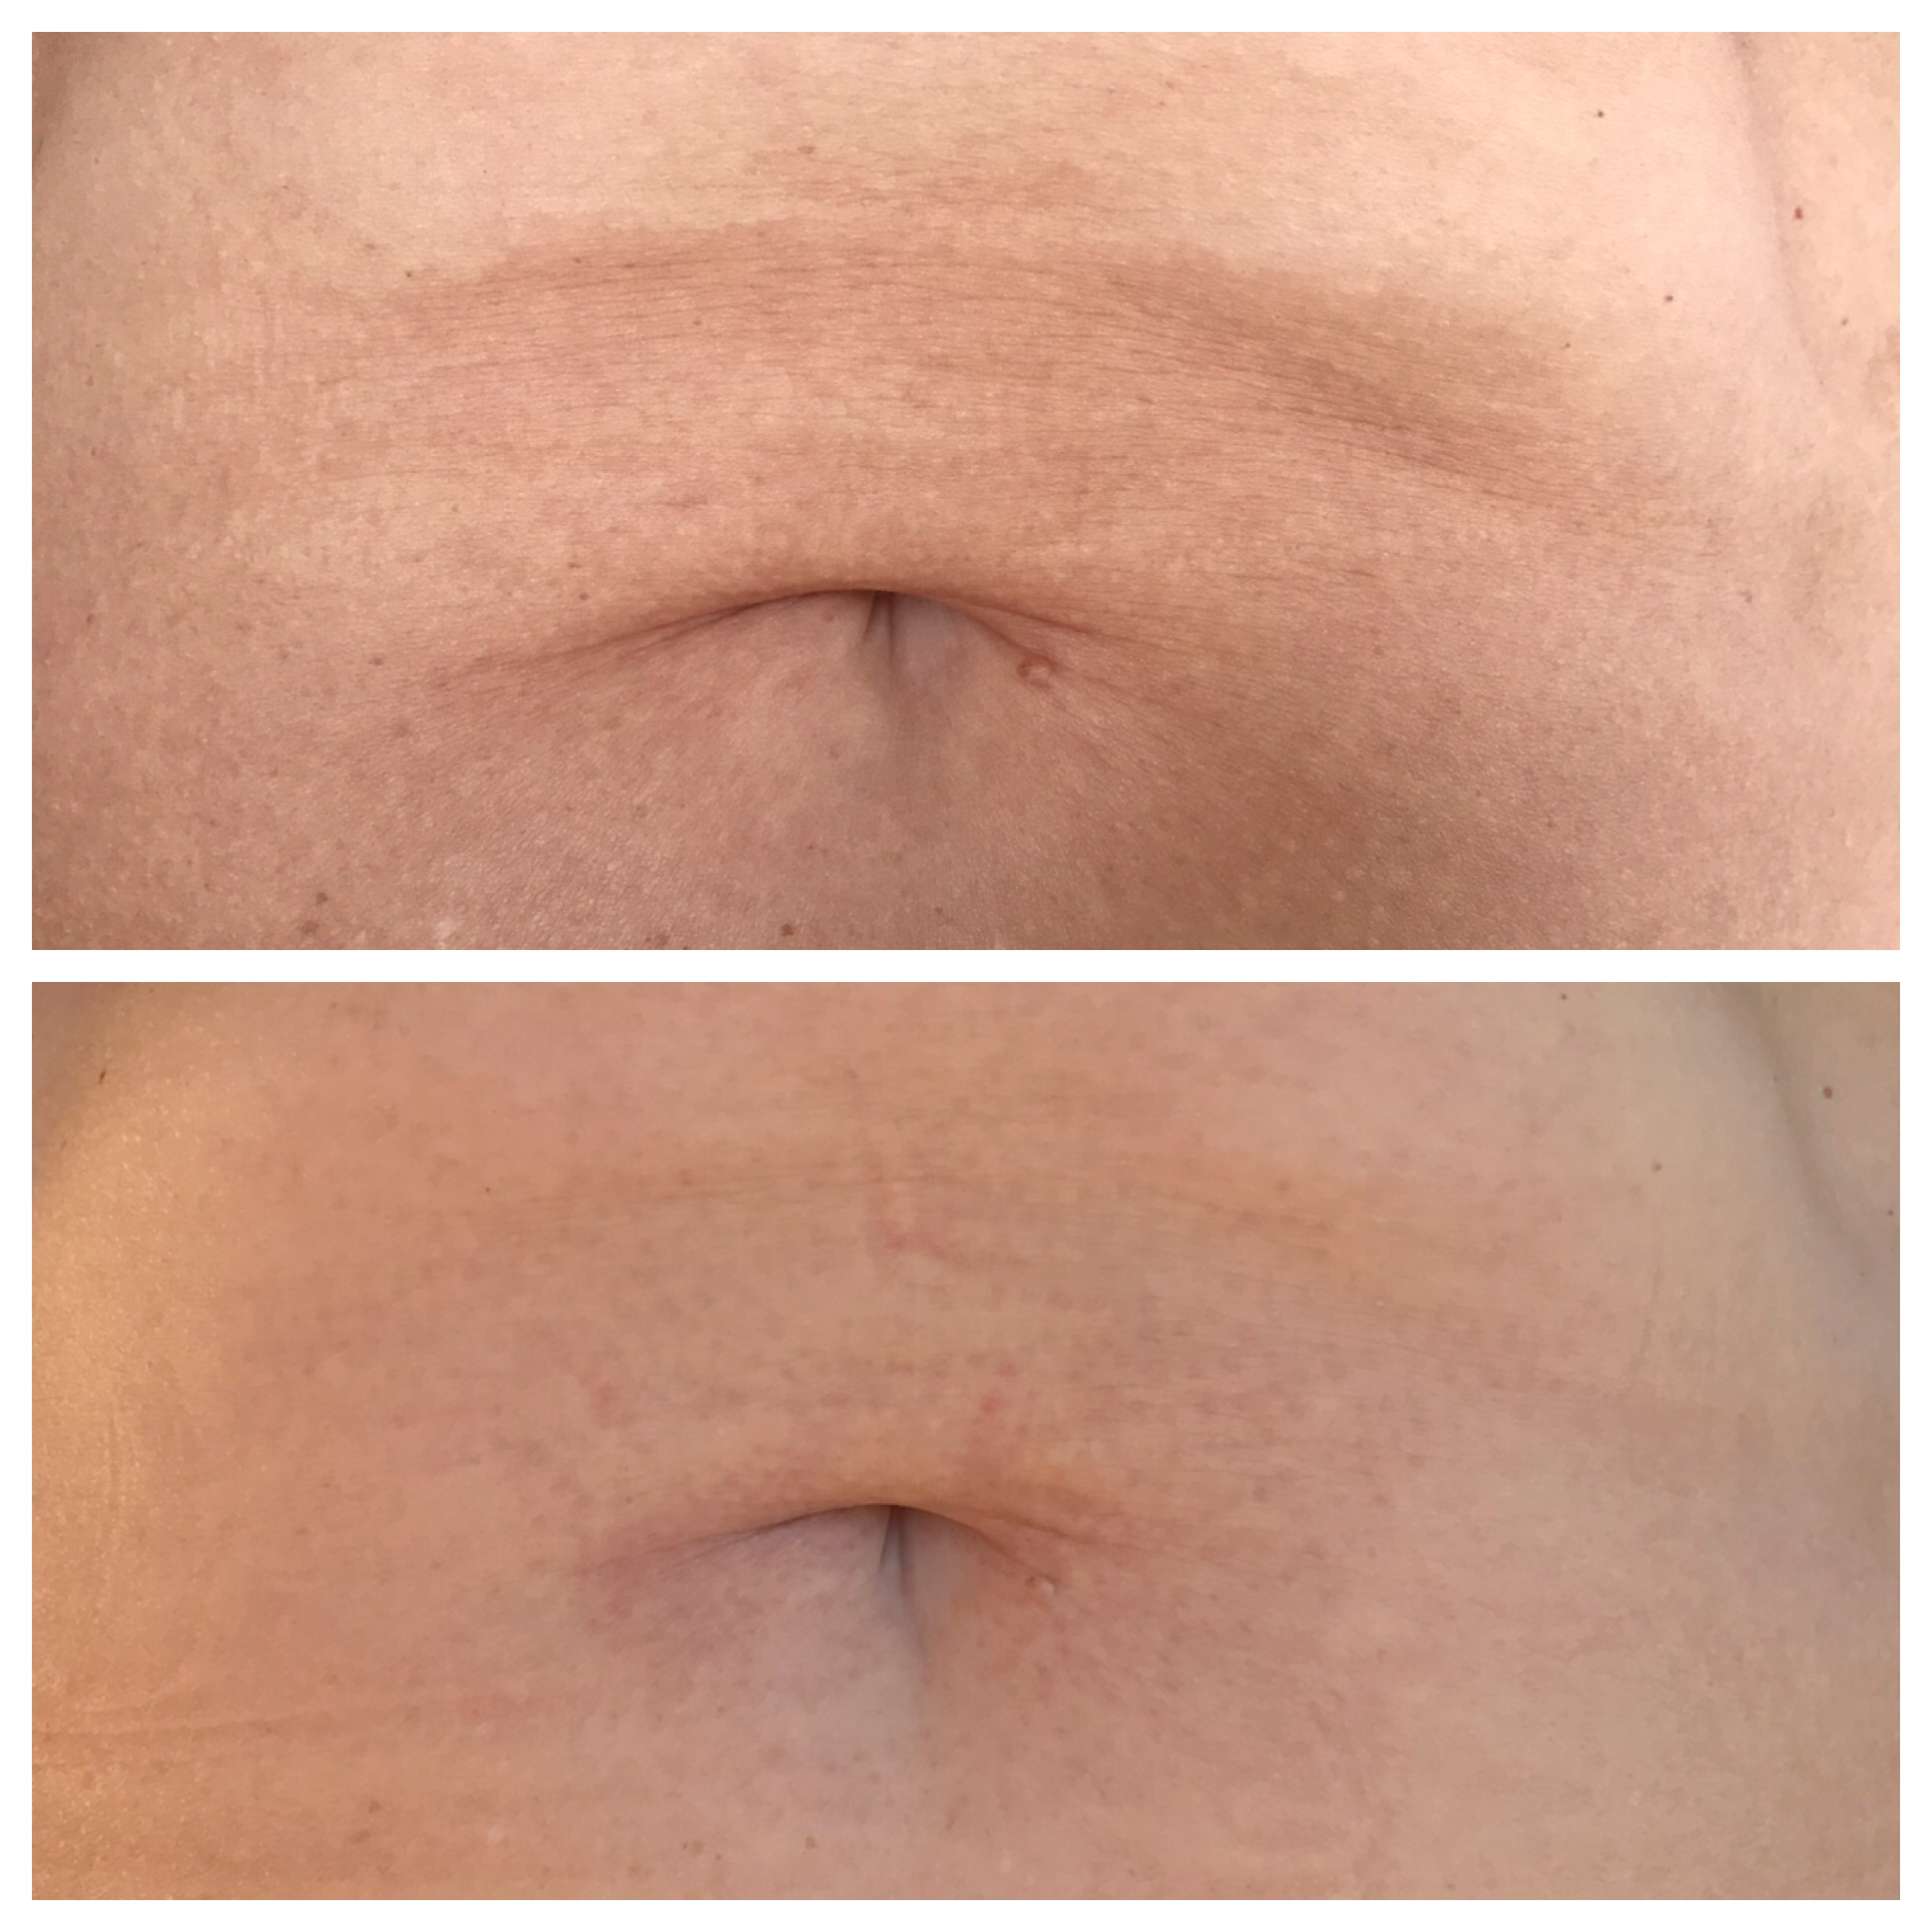 One treatment, 2 months healed. Fold over the belly button has shortened, wrinkles on the fold and fine lines above the belly button are reduced.